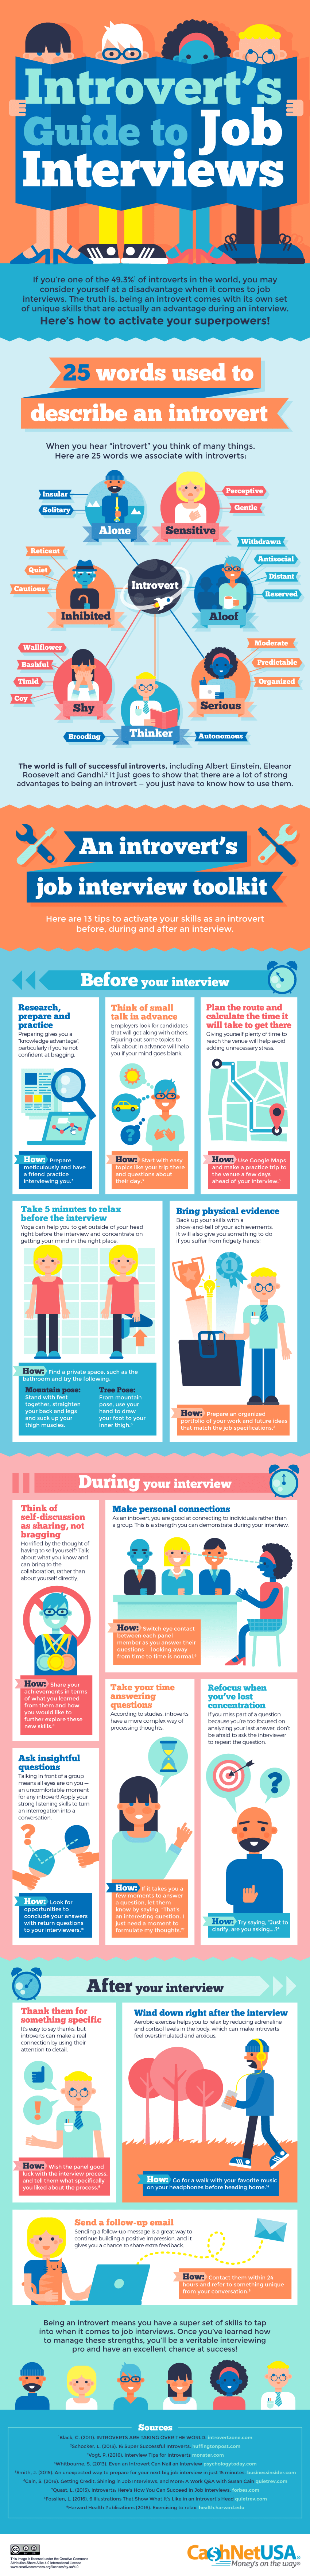 Scoring at Job Interviews: An Introverts Guide - Infographic